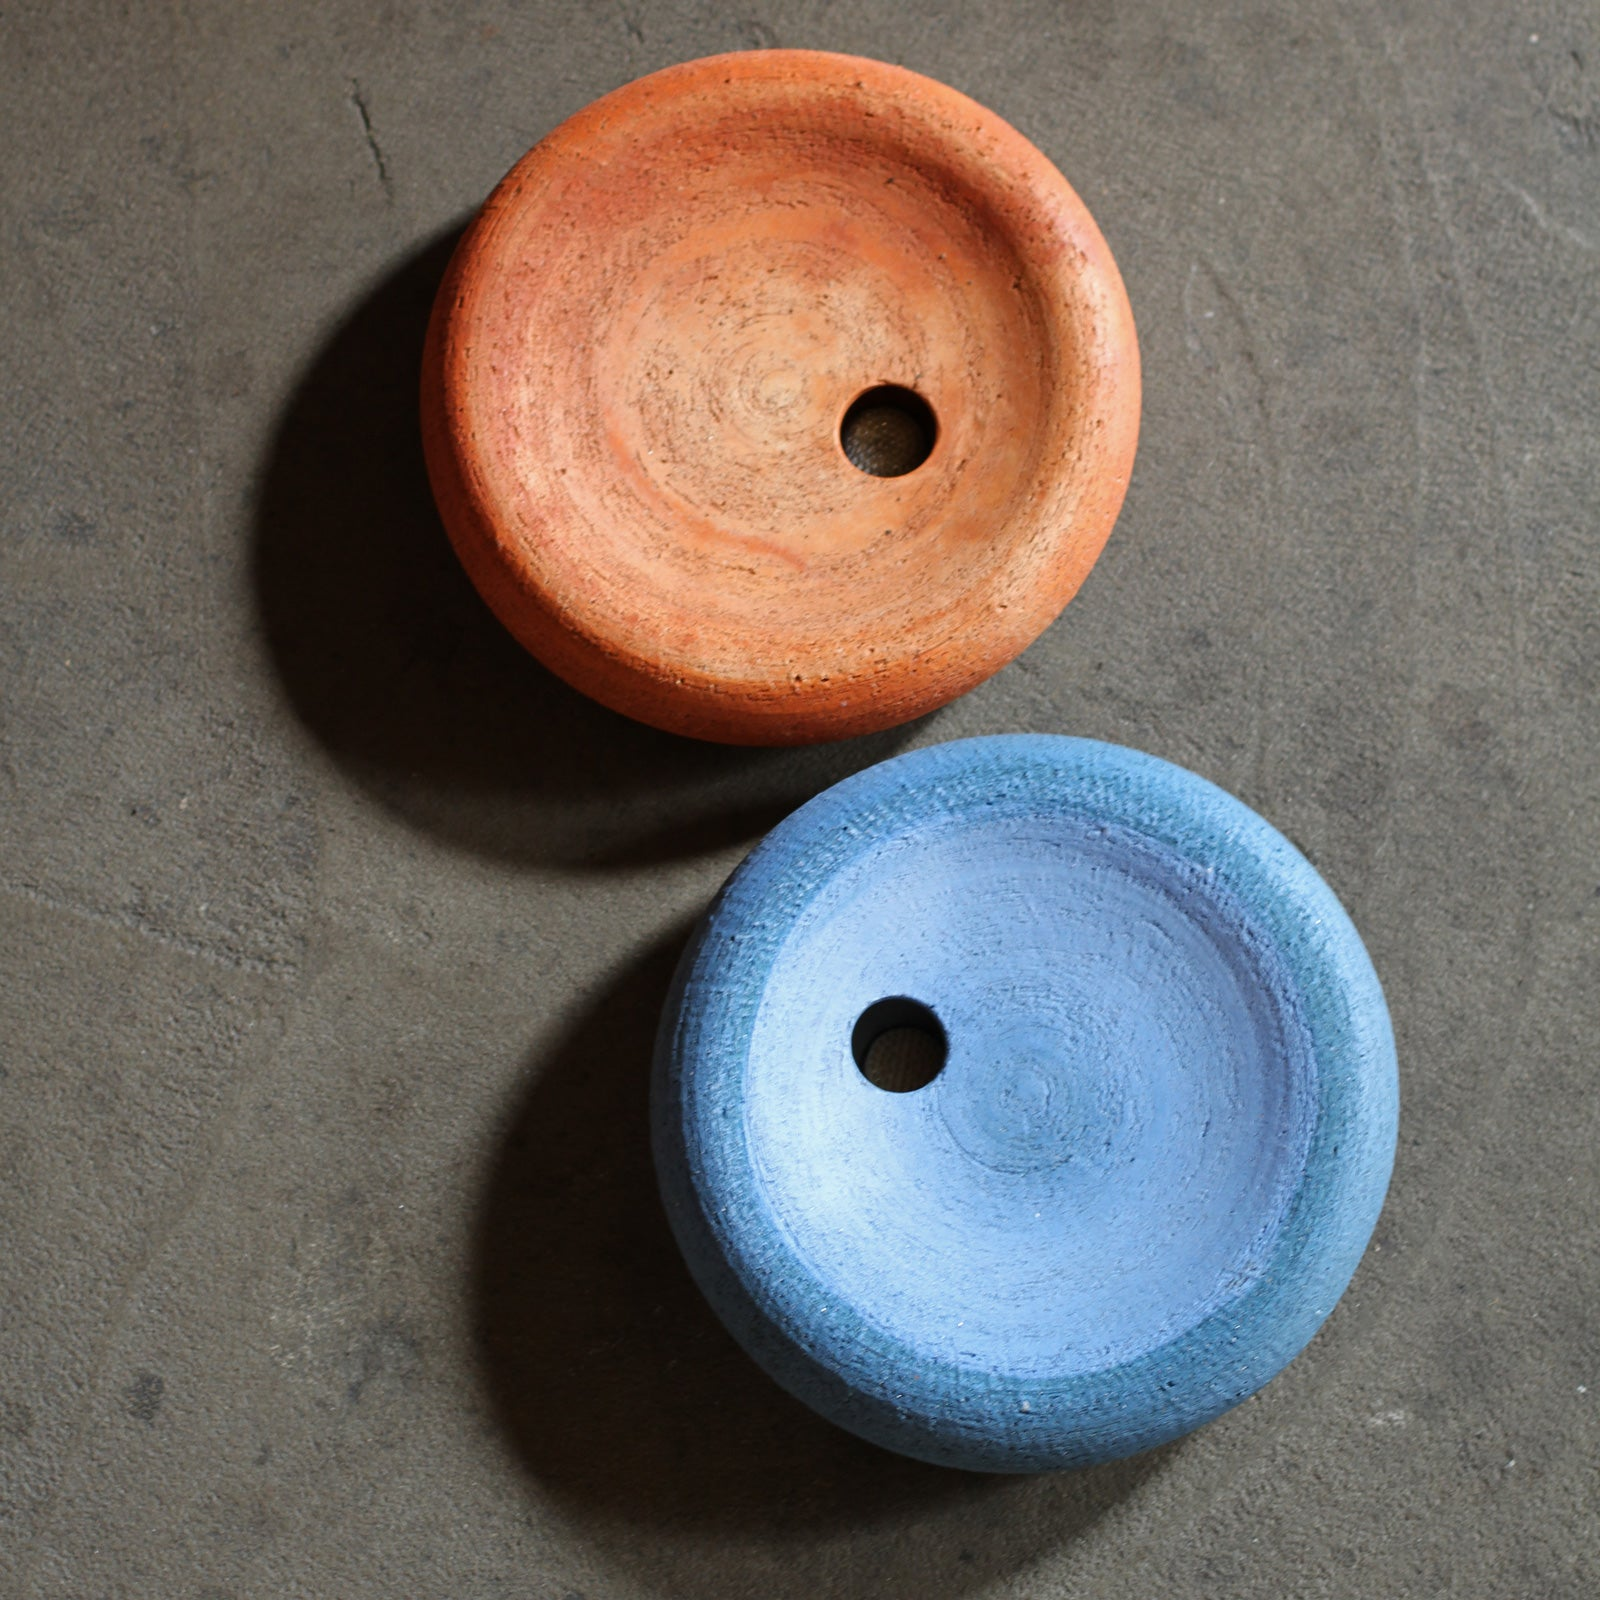 Two low round salt-fired clay ikebana vases with small round hole off-center, one orange and one cobalt blue